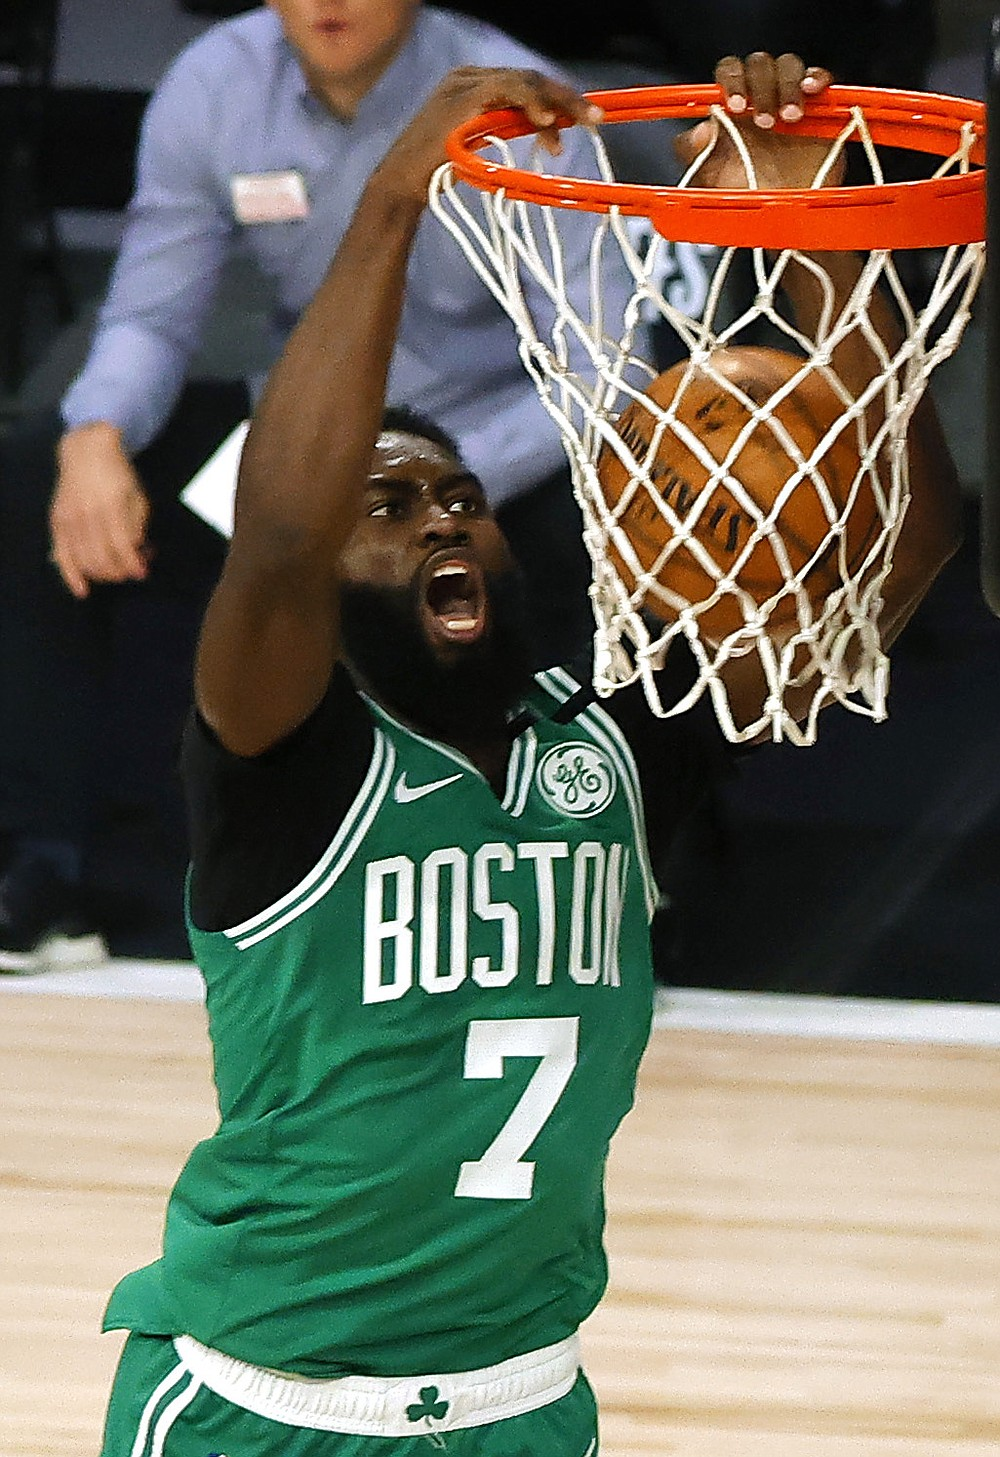 Boston Celtics' Jaylen Brown dunks against the Philadelphia 76ers during the first quarter of Game 2 of an NBA basketball first-round playoff series, Wednesday, Aug. 19, 2020, in Lake Buena Vista, Fla. (Kevin C. Cox/Pool Photo via AP)